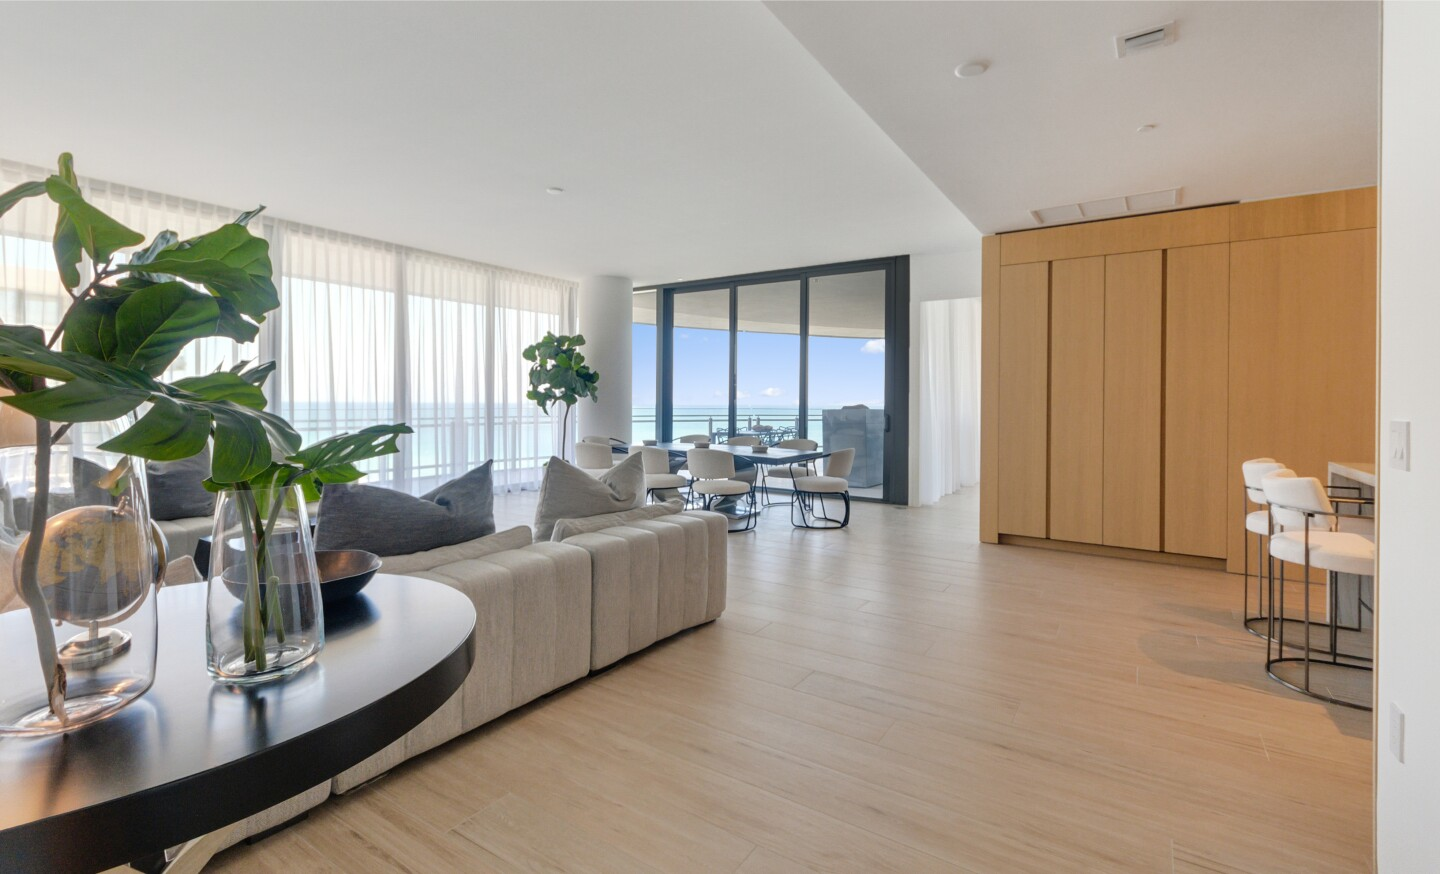 Found in an 18-story luxury complex, the condo includes 2,400 square feet of living spaces and a 1,700-square-foot wraparound terrace.